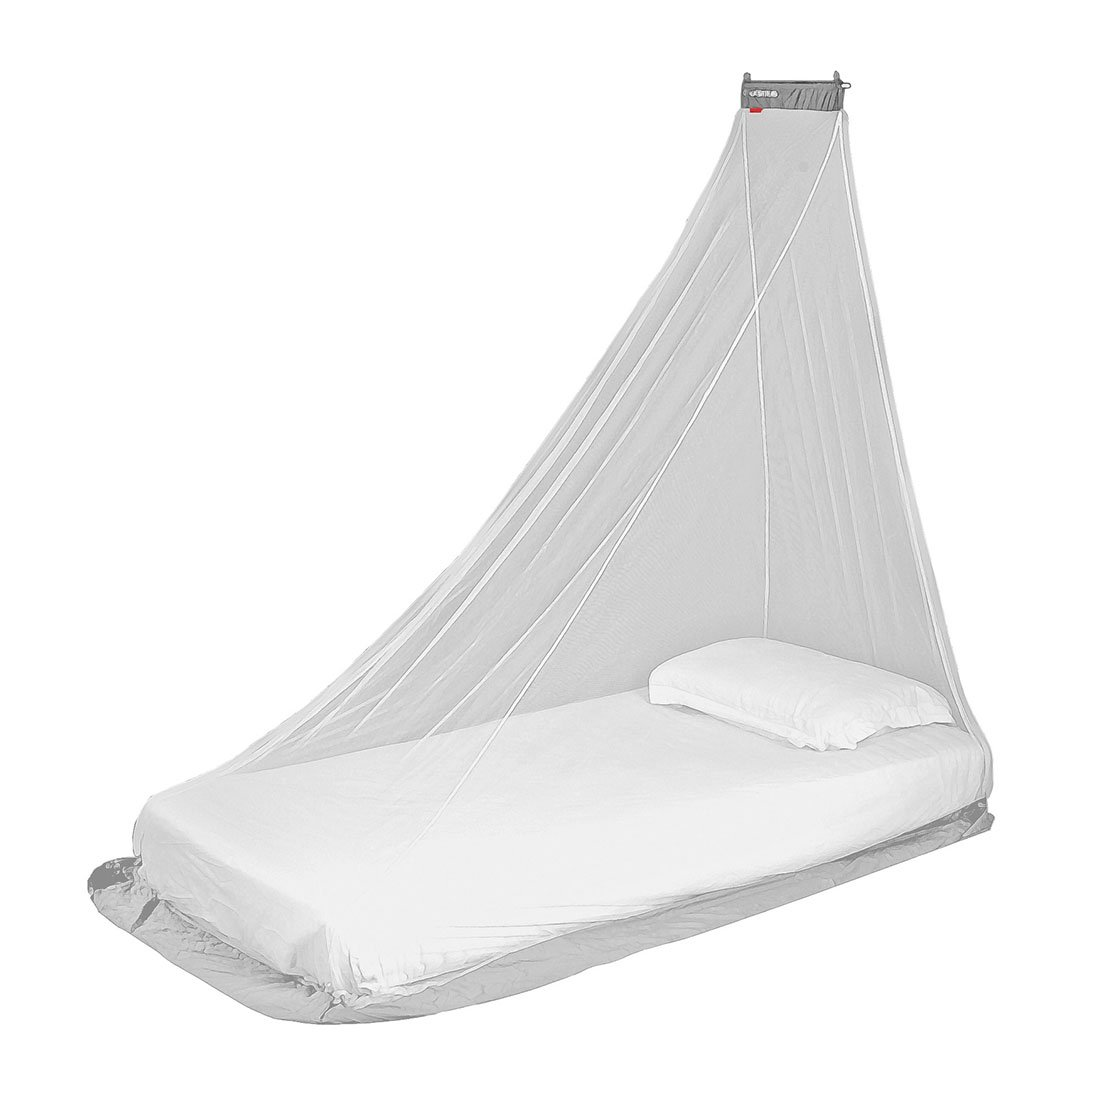 Lightweight Mosquito Net Micronet Single Lifesystems